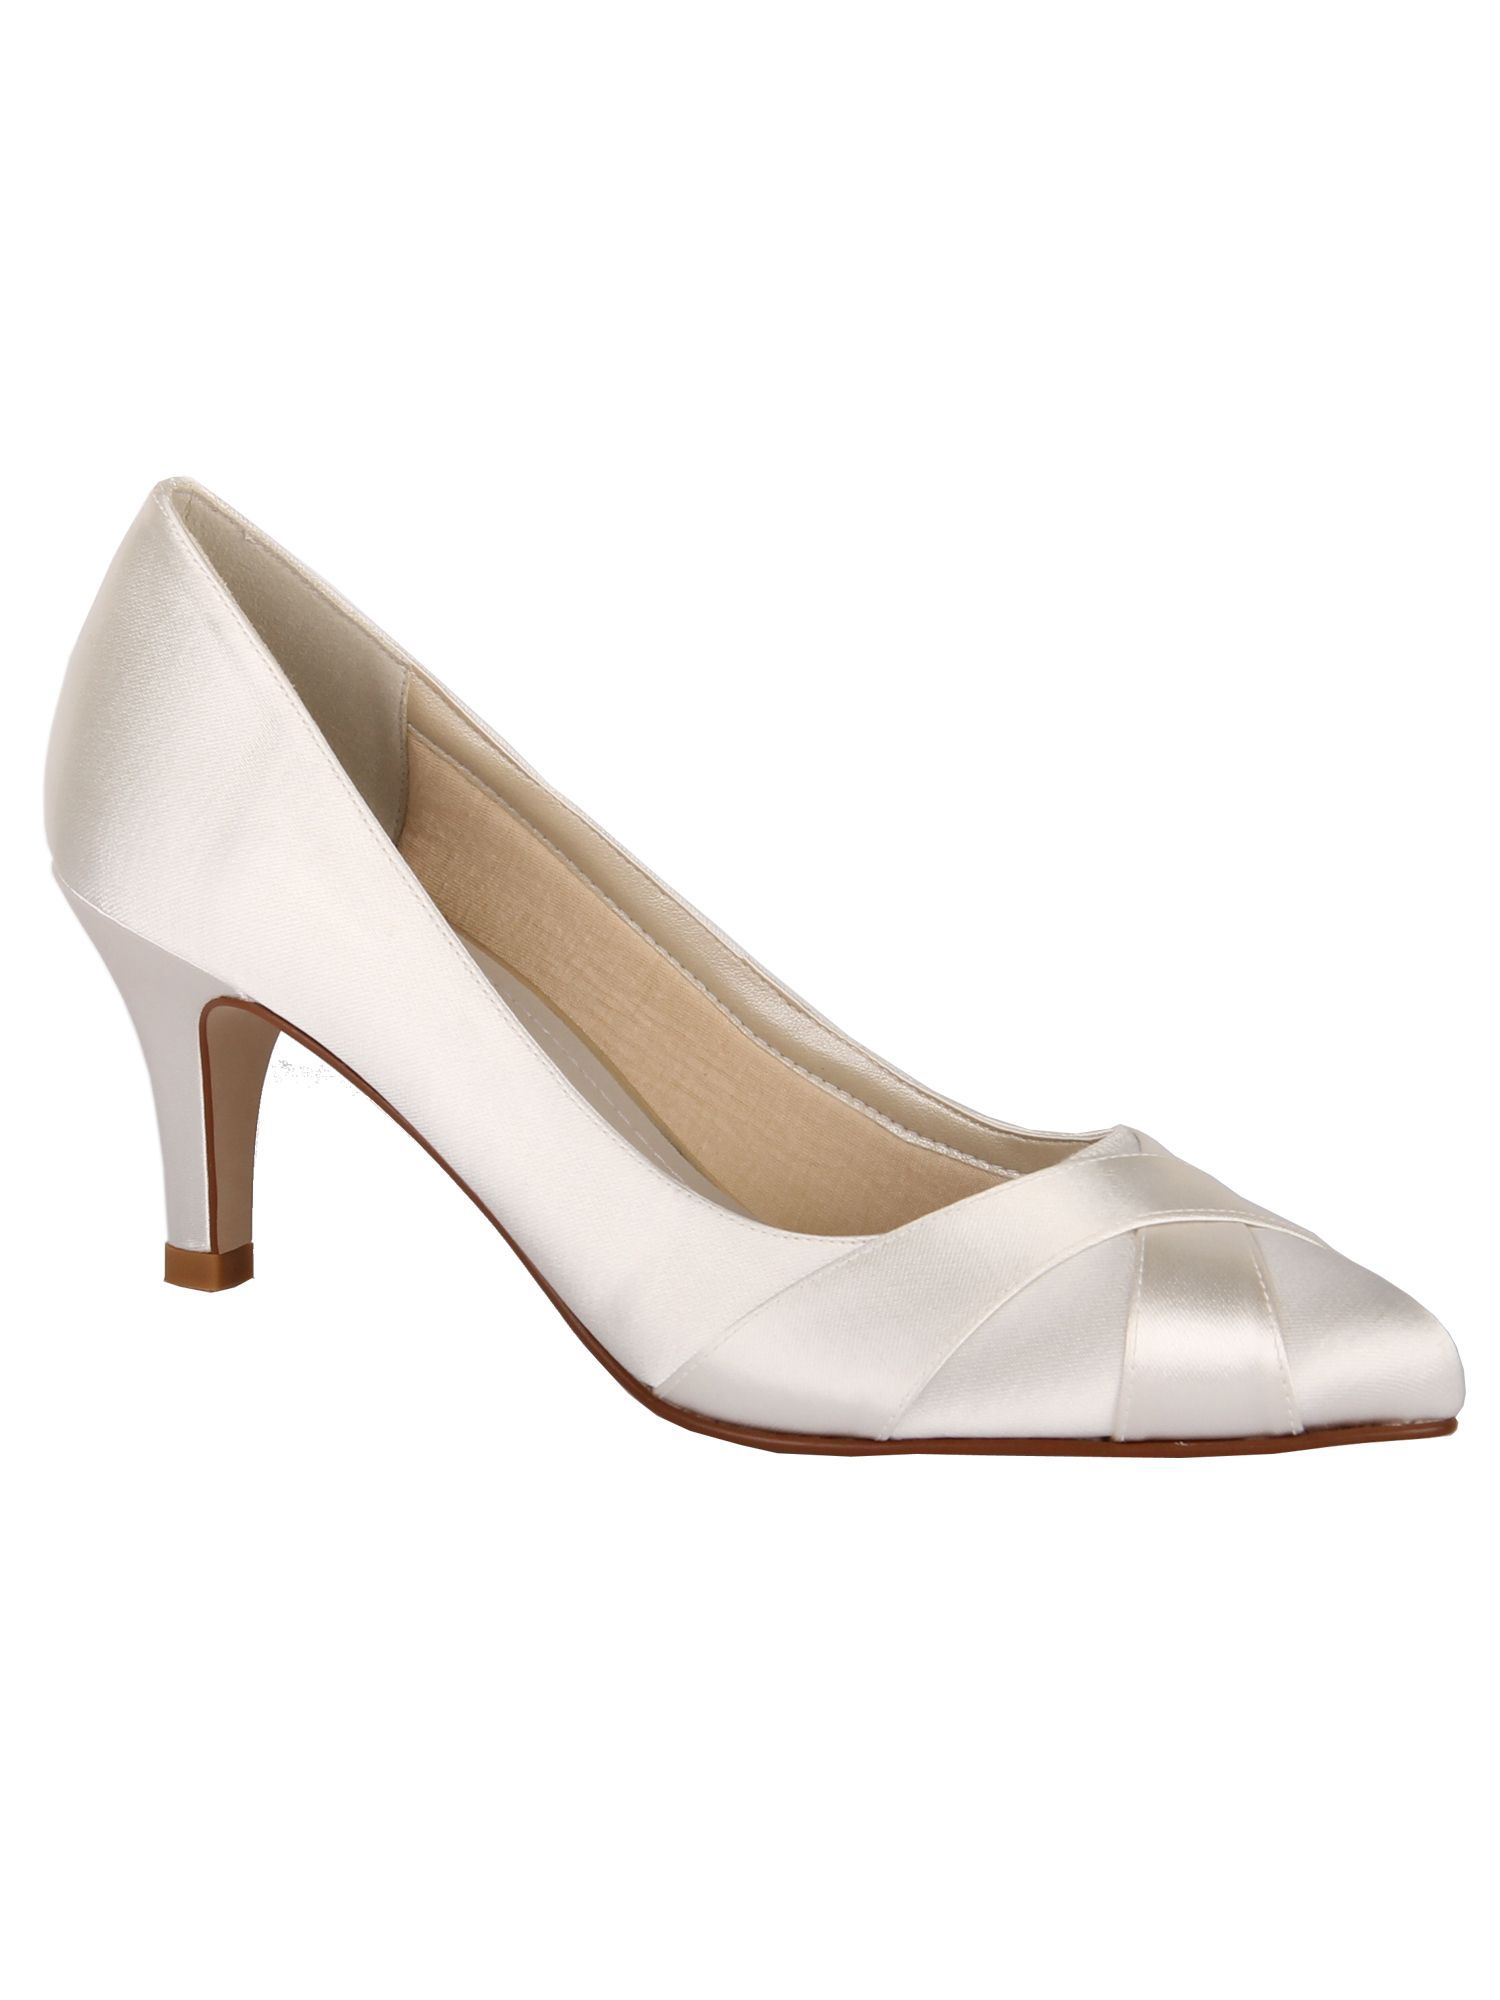 Rainbow Club Lexi crossover court shoes, Ivory